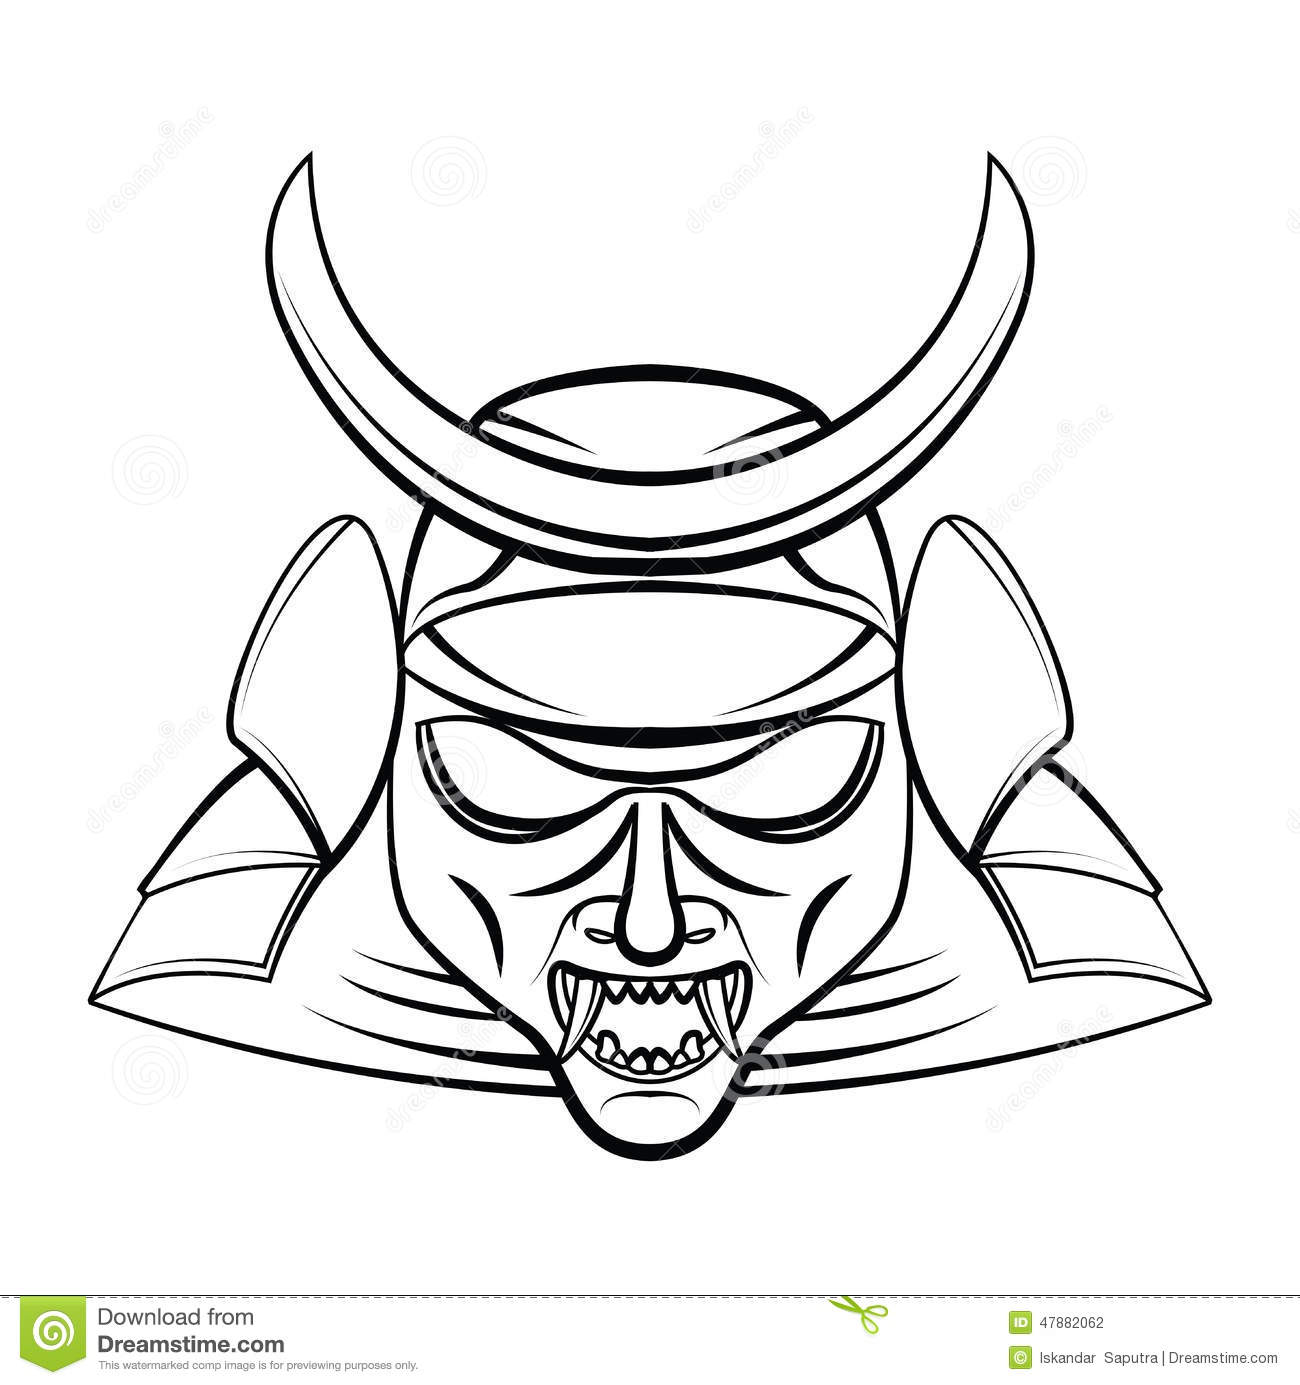 samurai coloring pages - samurai mask stock vector illustration of head helmet